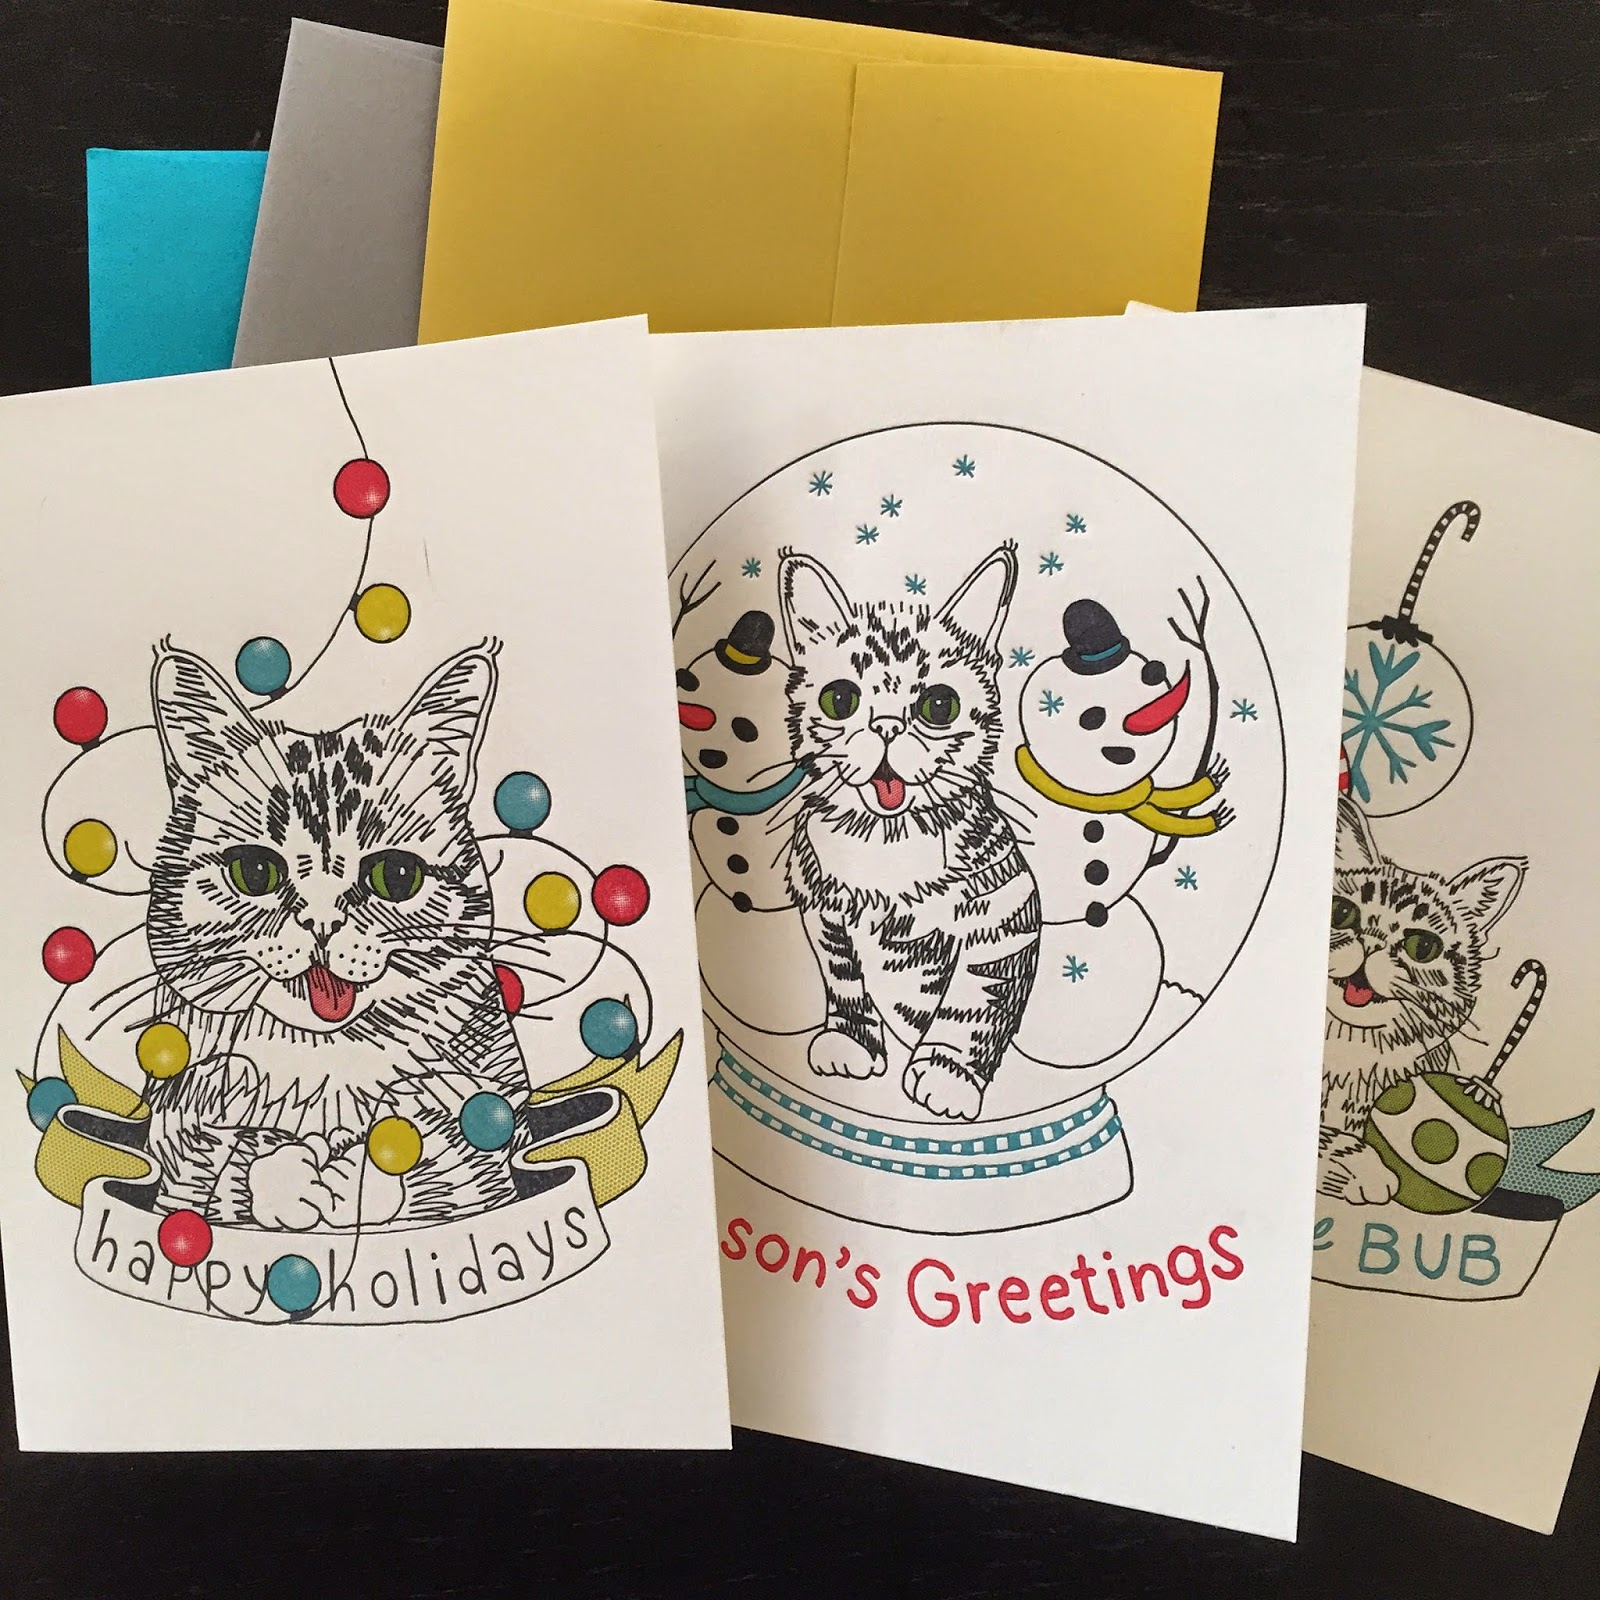 Jennifer davis art lil bub letterpress greeting cards my friend jenni undis helped me design the cards and they were printed at lunalux her letterpress shop in minneapolis m4hsunfo